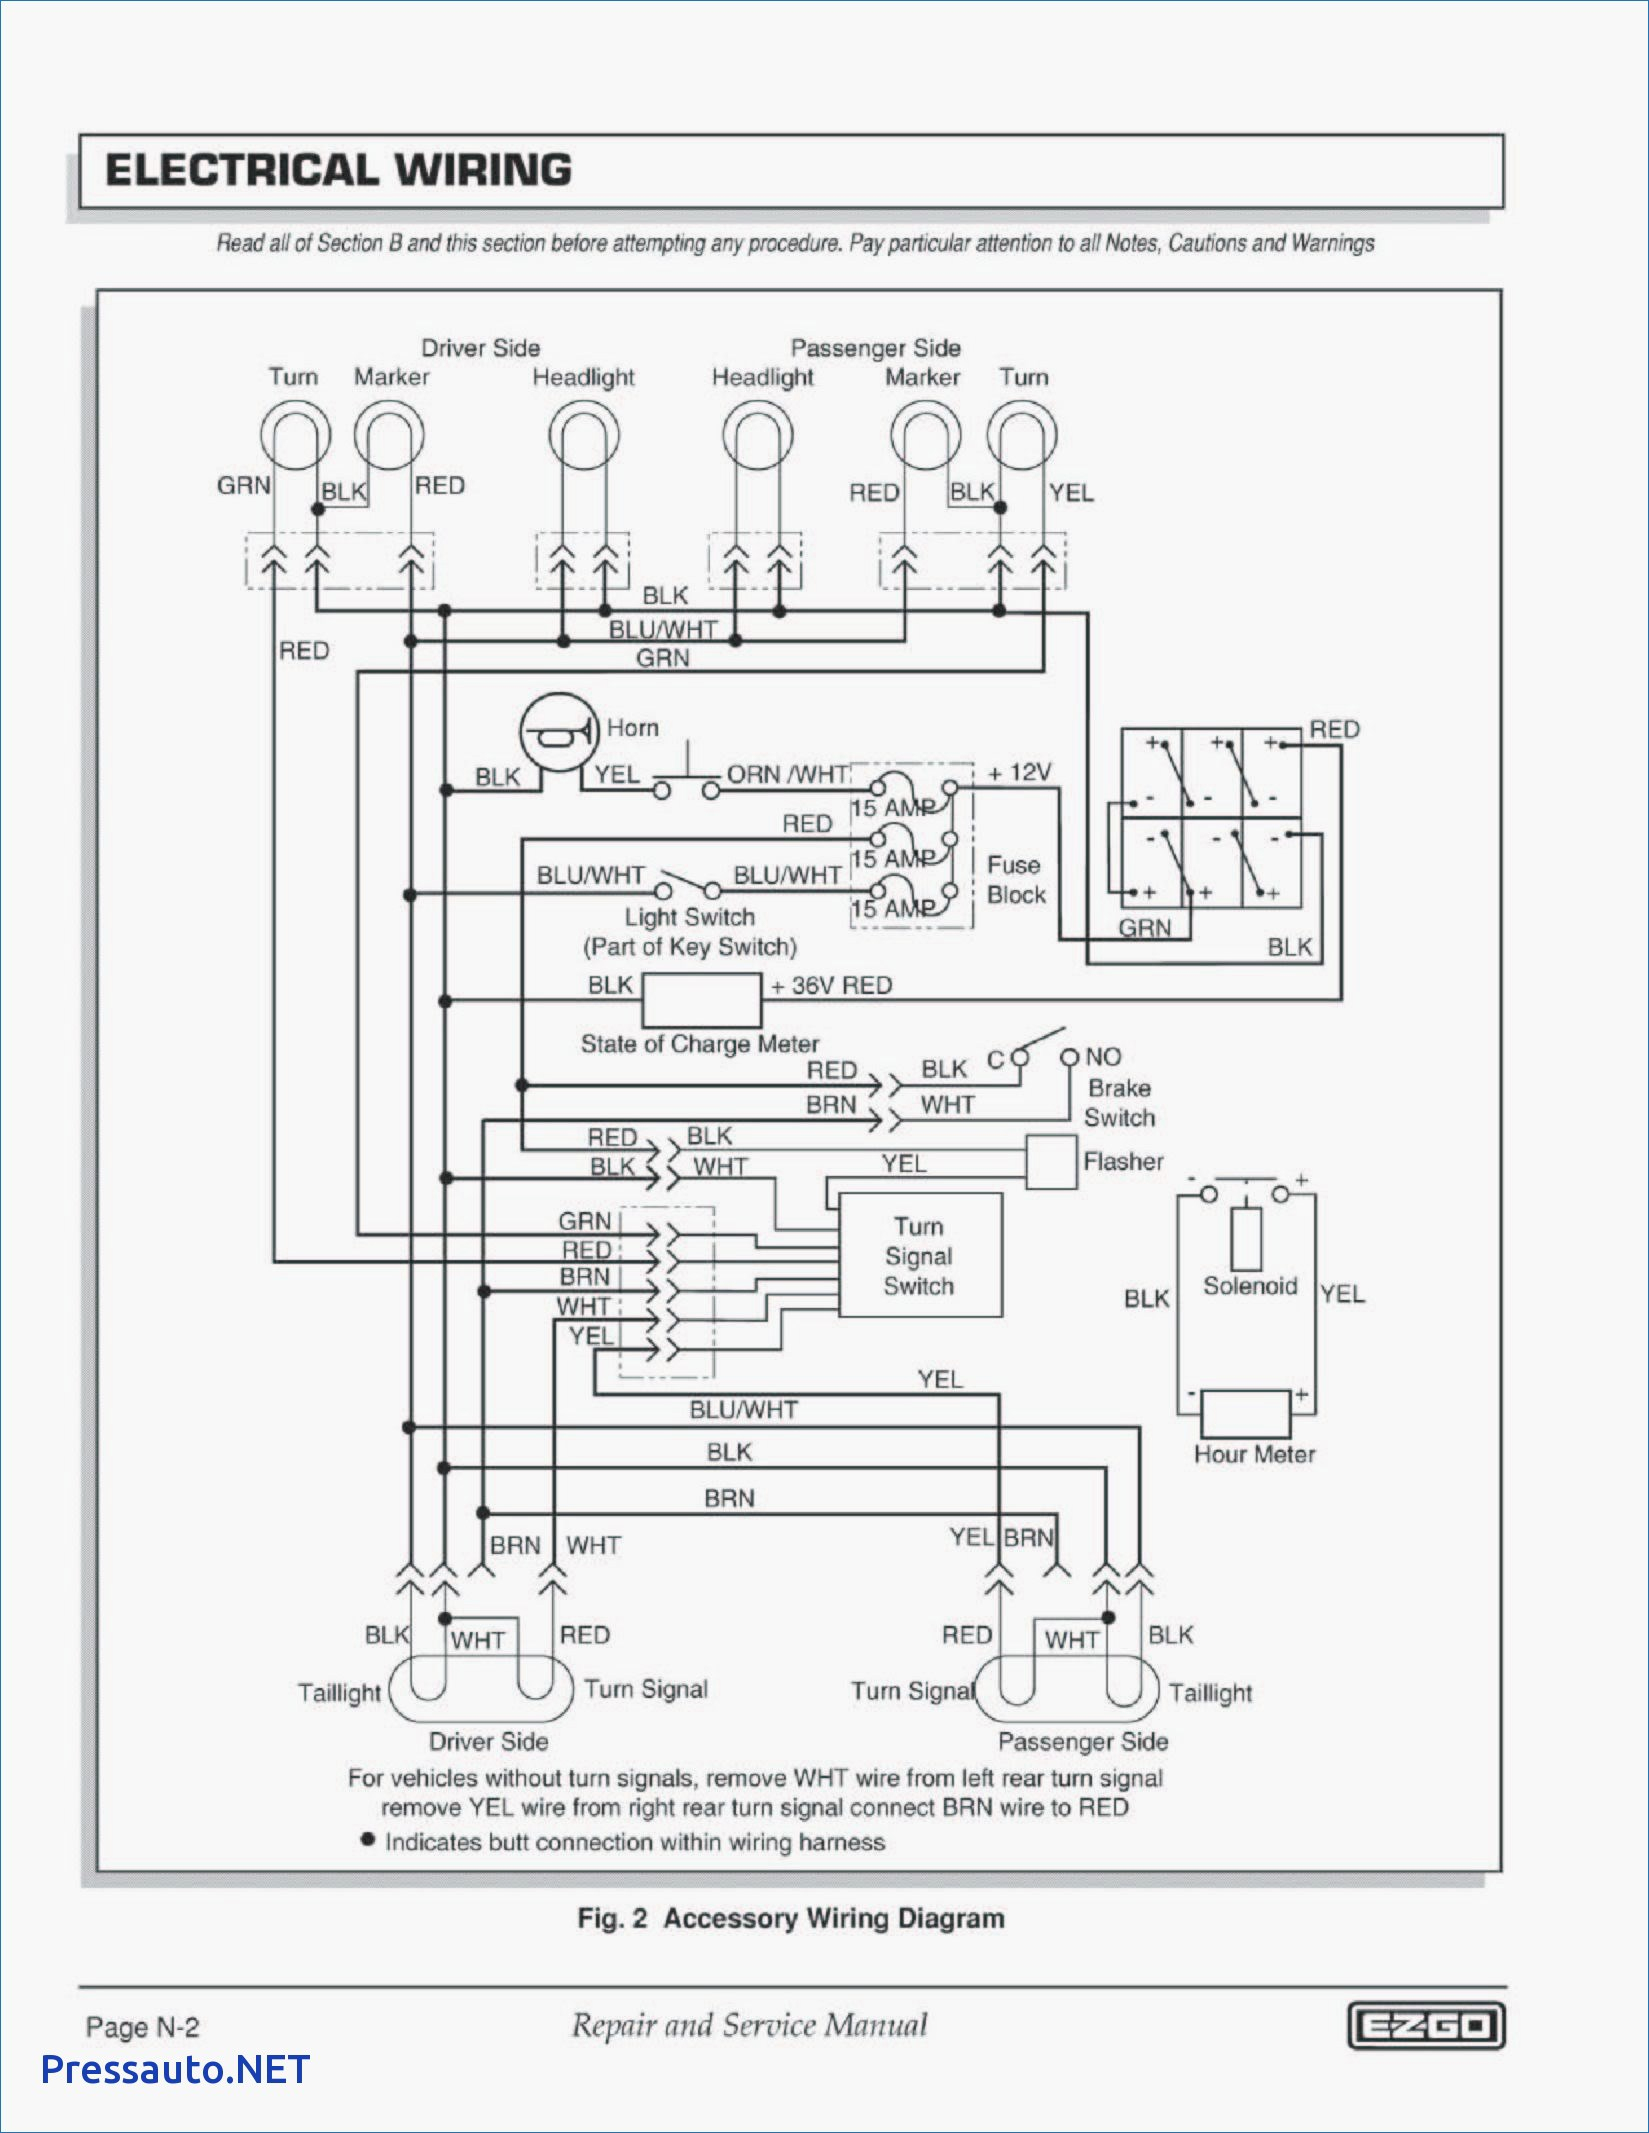 98 Ezgo Wiring Diagram | Manual E-Books - Ez Go Wiring Diagram 36 Volt